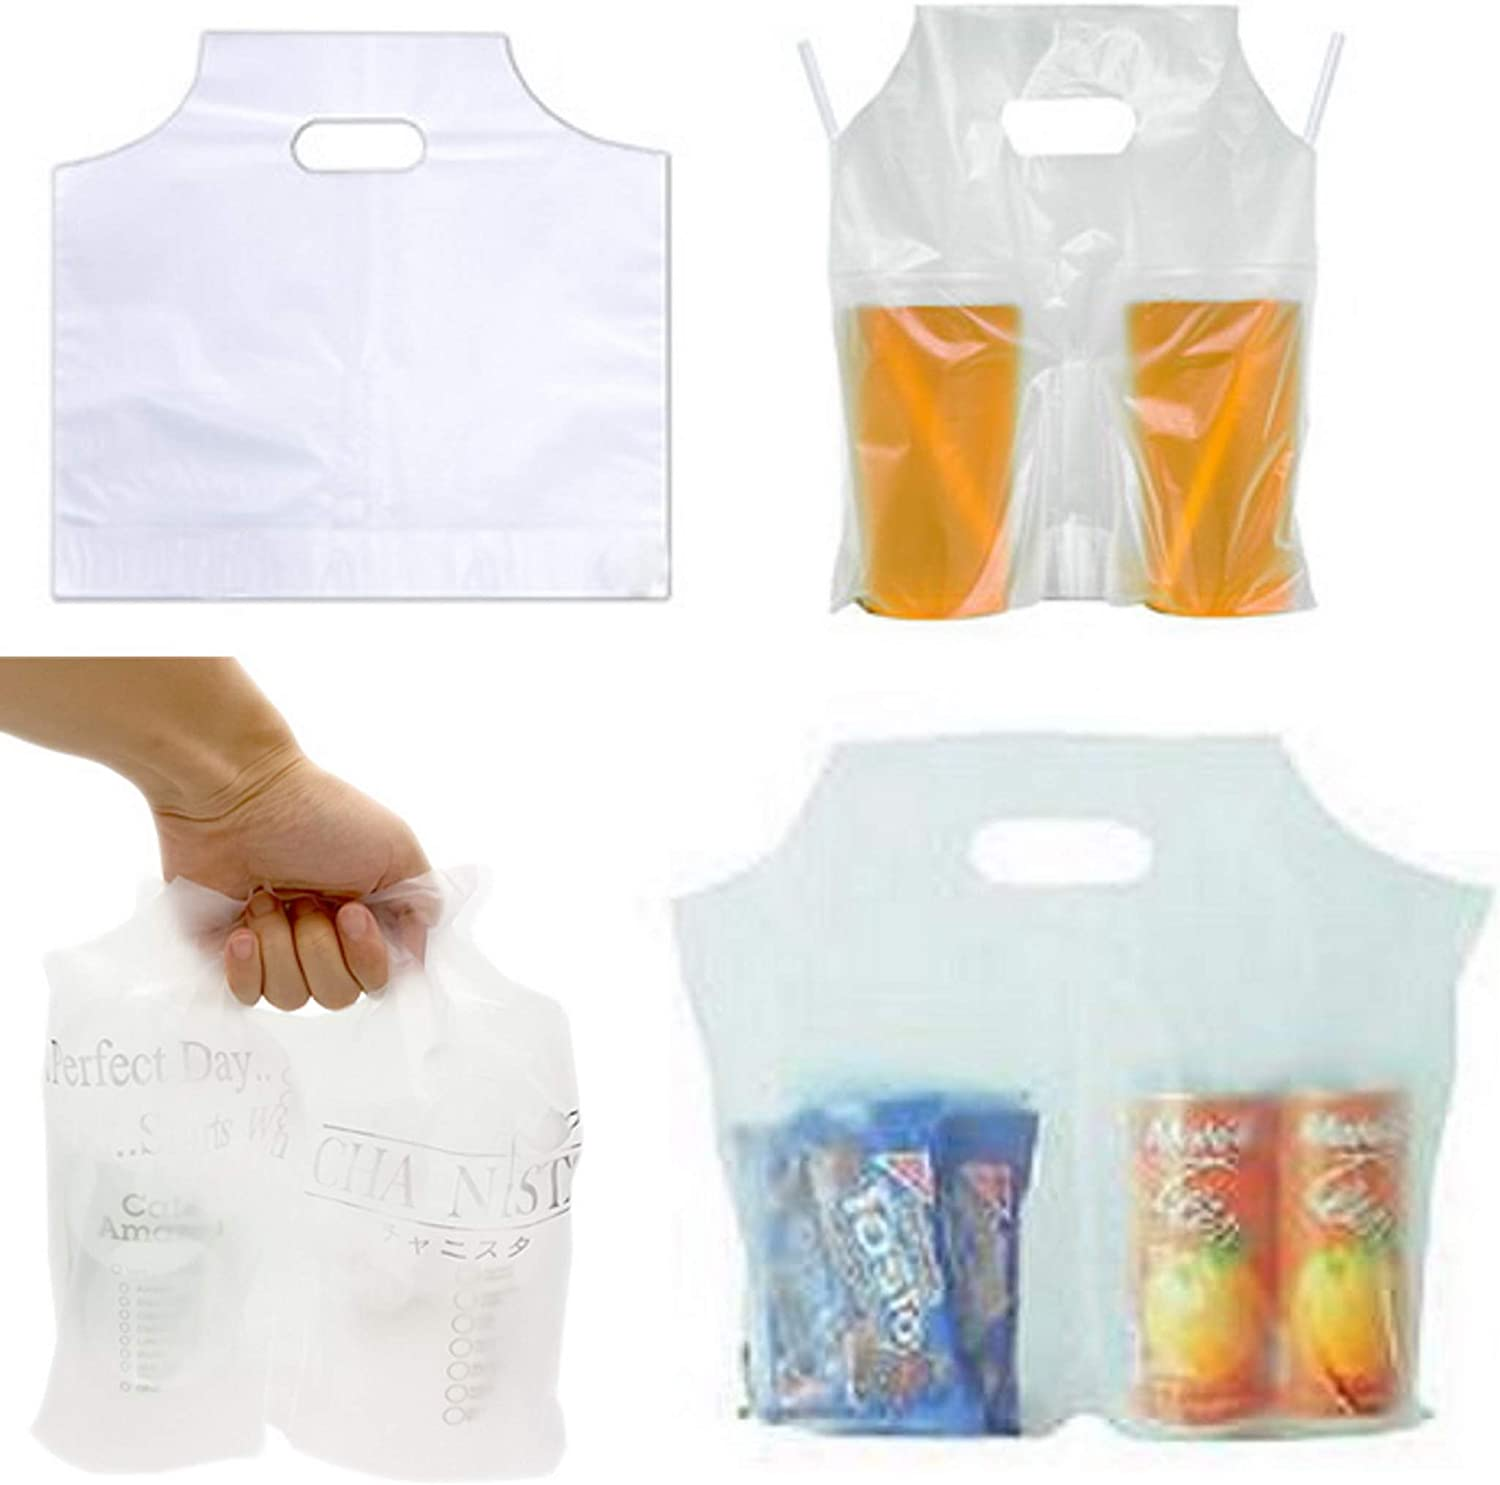 100PCS Plastic Clear Handle Drink Containers Bags for Shops Stores Delivery Hanging Carry Take Out Beverage Coffer Milk Juice Water Tea Hole Liquid Pouches Single or Double Cups (Double Cups)